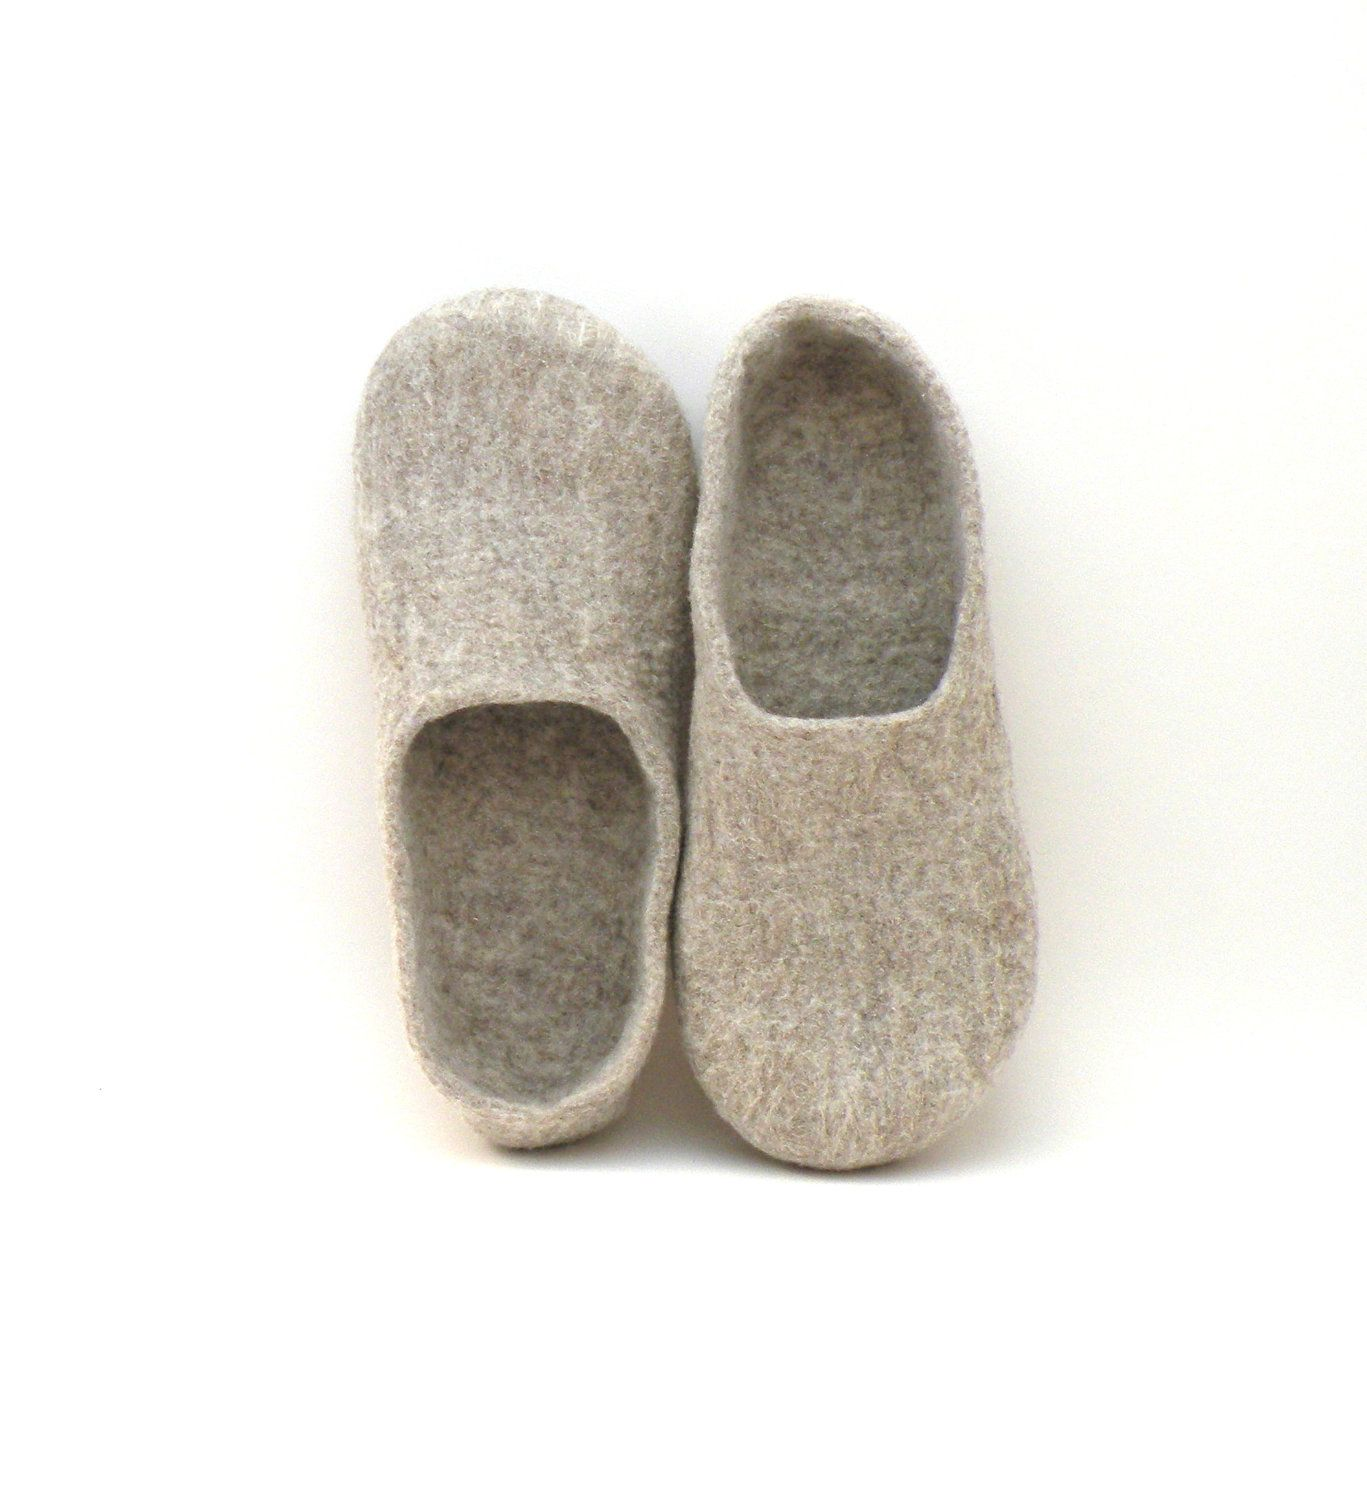 b339f93b1d69a1 Felted slippers Neutral - natural beige wool clogs - made to order - cozy  home shoes - eco friendly - autumn fall winter fashion.  65.00